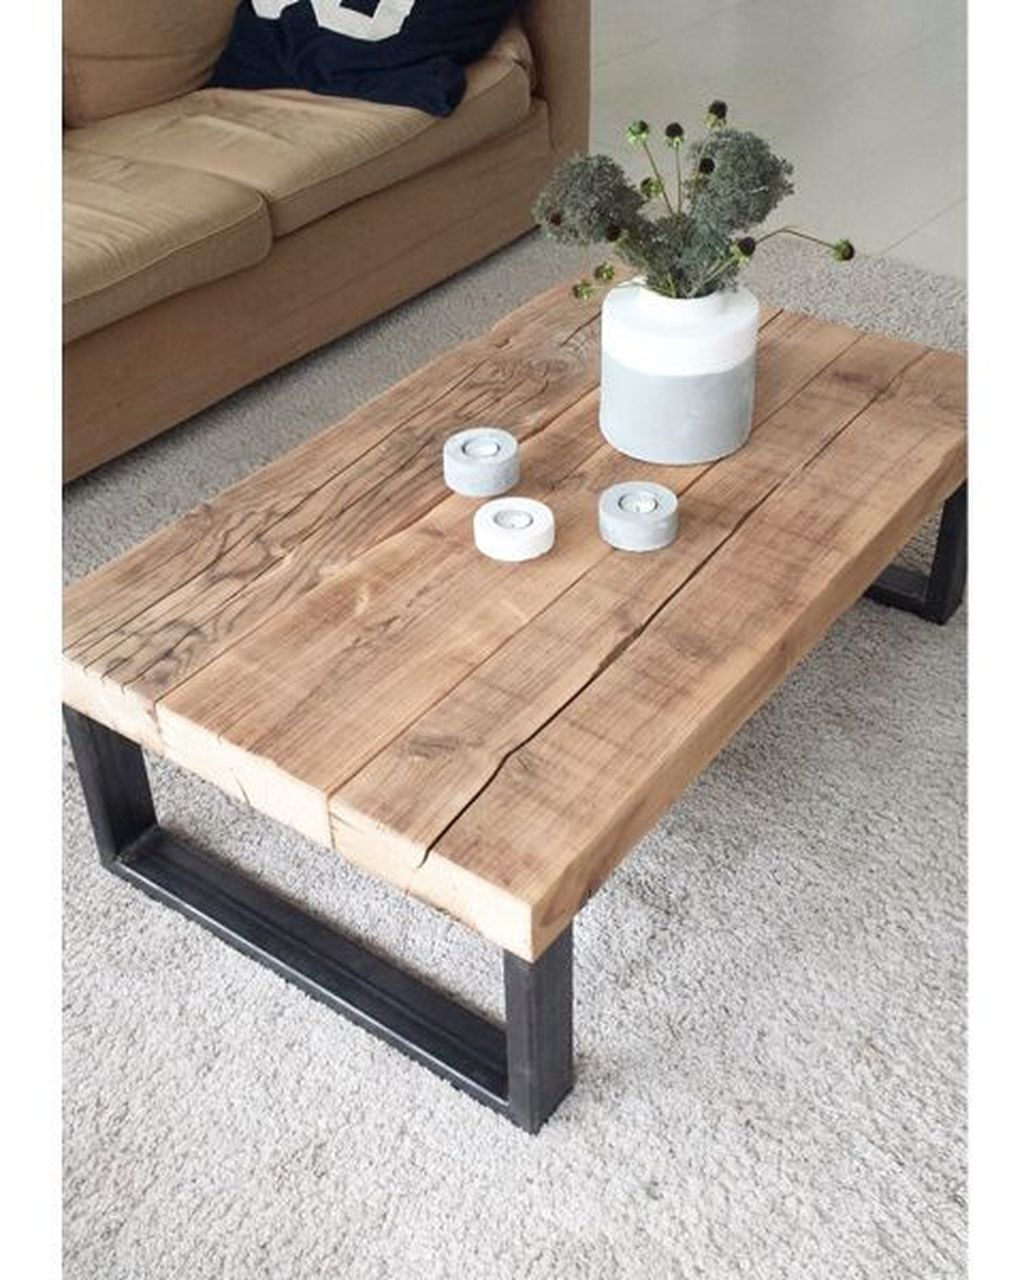 34 Awesome Diy Coffee Table Projects is part of  - Once you have located the right DIY coffee table plans, completion of your project will take just a few hours  […]